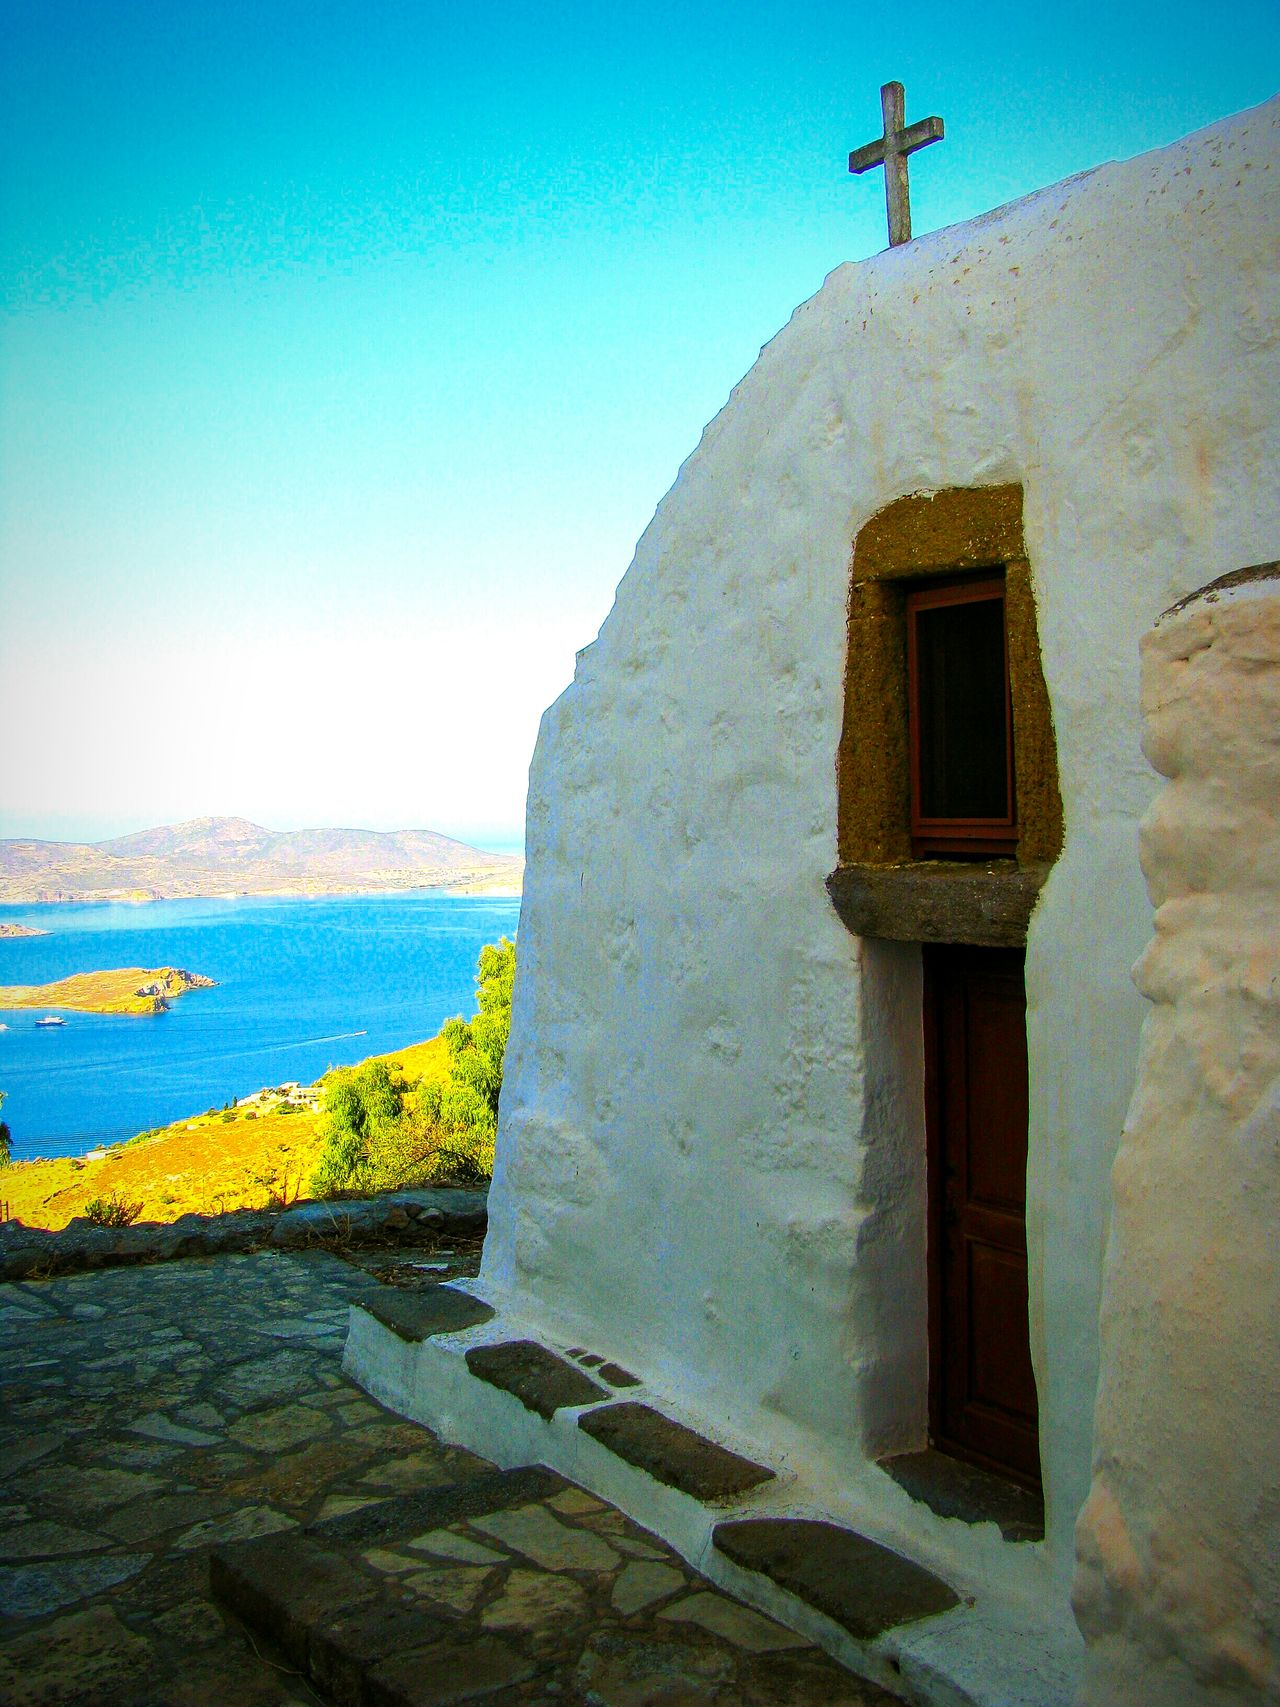 Country Church Church Greek Islands No People Amazing View Shades Of Blue Studies Of Whiteness WhiteCollection White Album NEM Still Life Plattenbau Seeing The Sights Tranquility Shadows The Best From Holiday POV Walking Around Endless Blue Patmos Island Summer Memories 🌄 The Tourist Pastel Power Wallpaper A Moment Of Zen... Religious Architecture